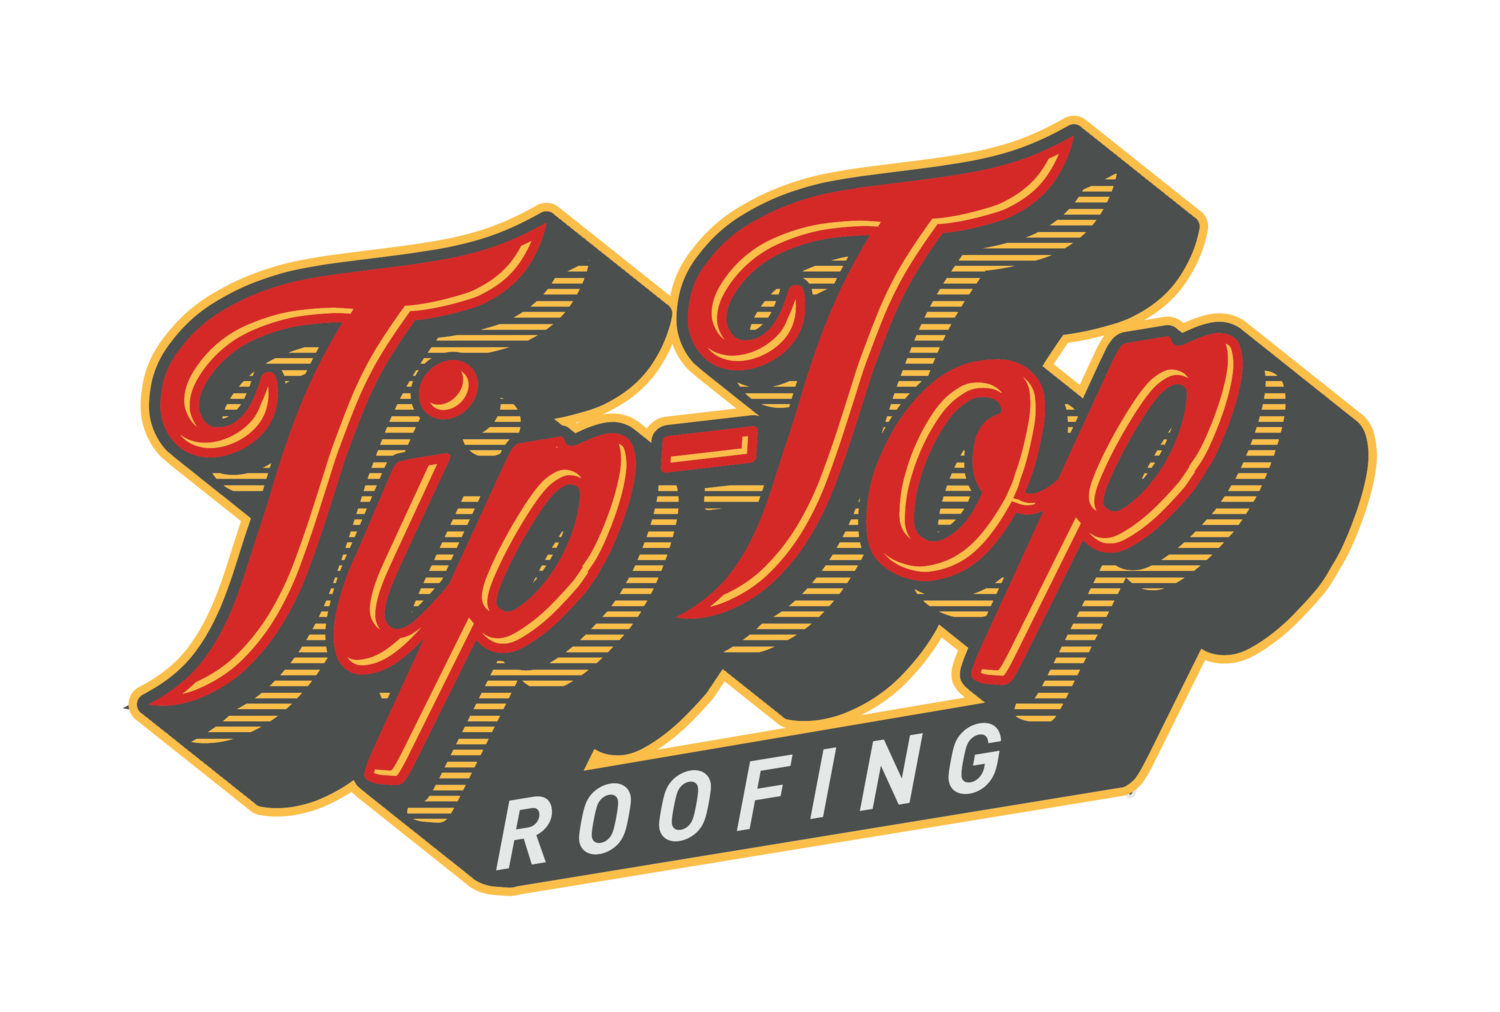 Tip-Top Roofing